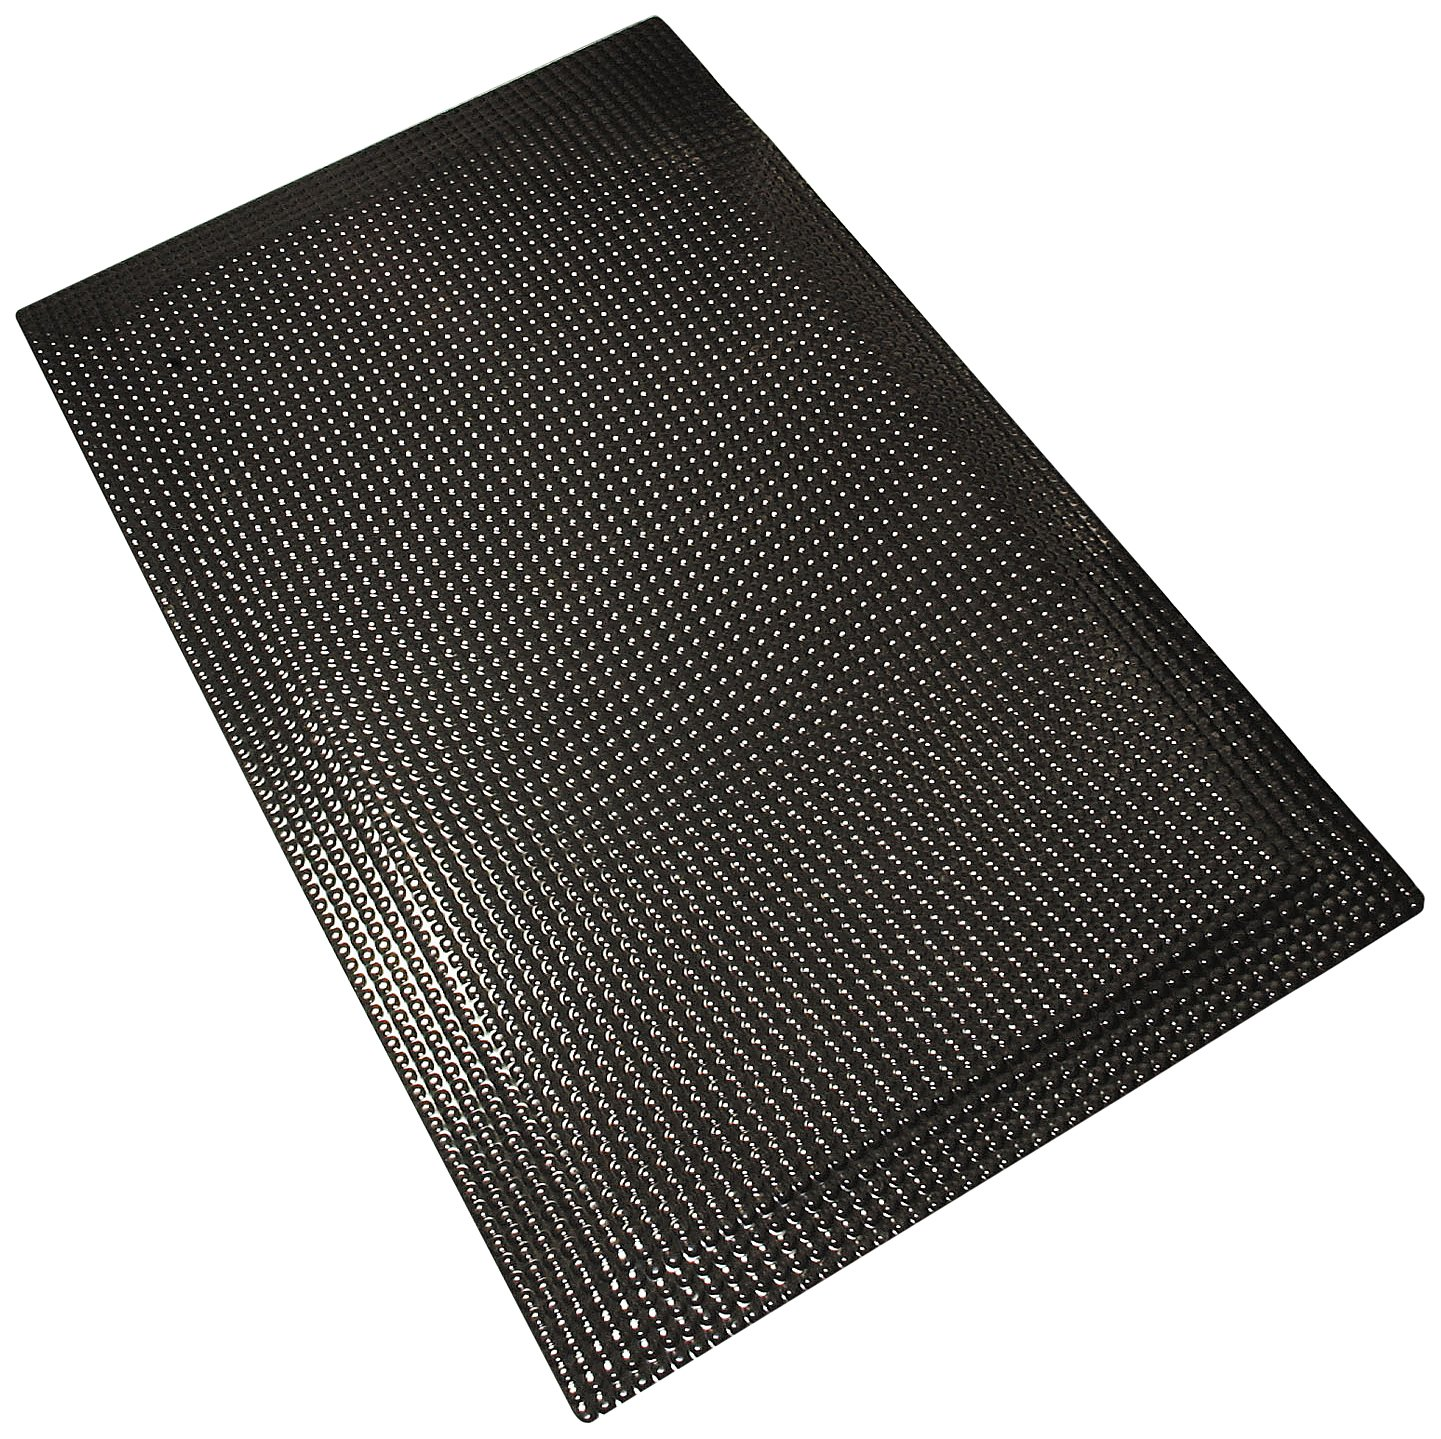 Rhino Mats RLXC-2448DS Reflex Conductive Anti-Fatigue Mat, 2' Width x 4' Length x 1'' Thickness